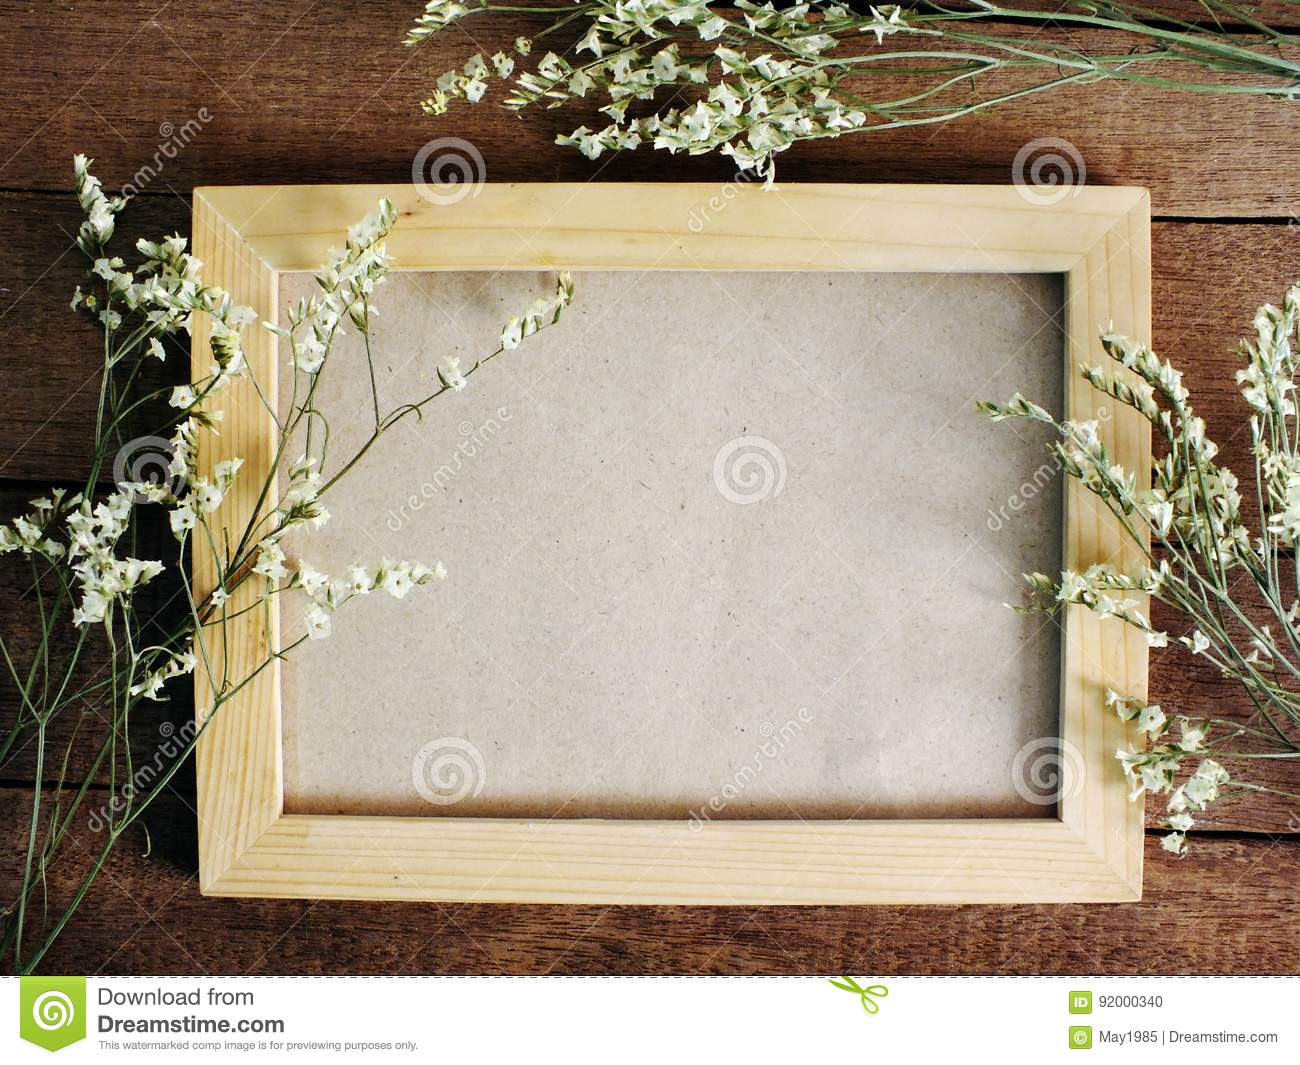 Wooden Photo Frames Space Background Decorate With Dried Flowers ...